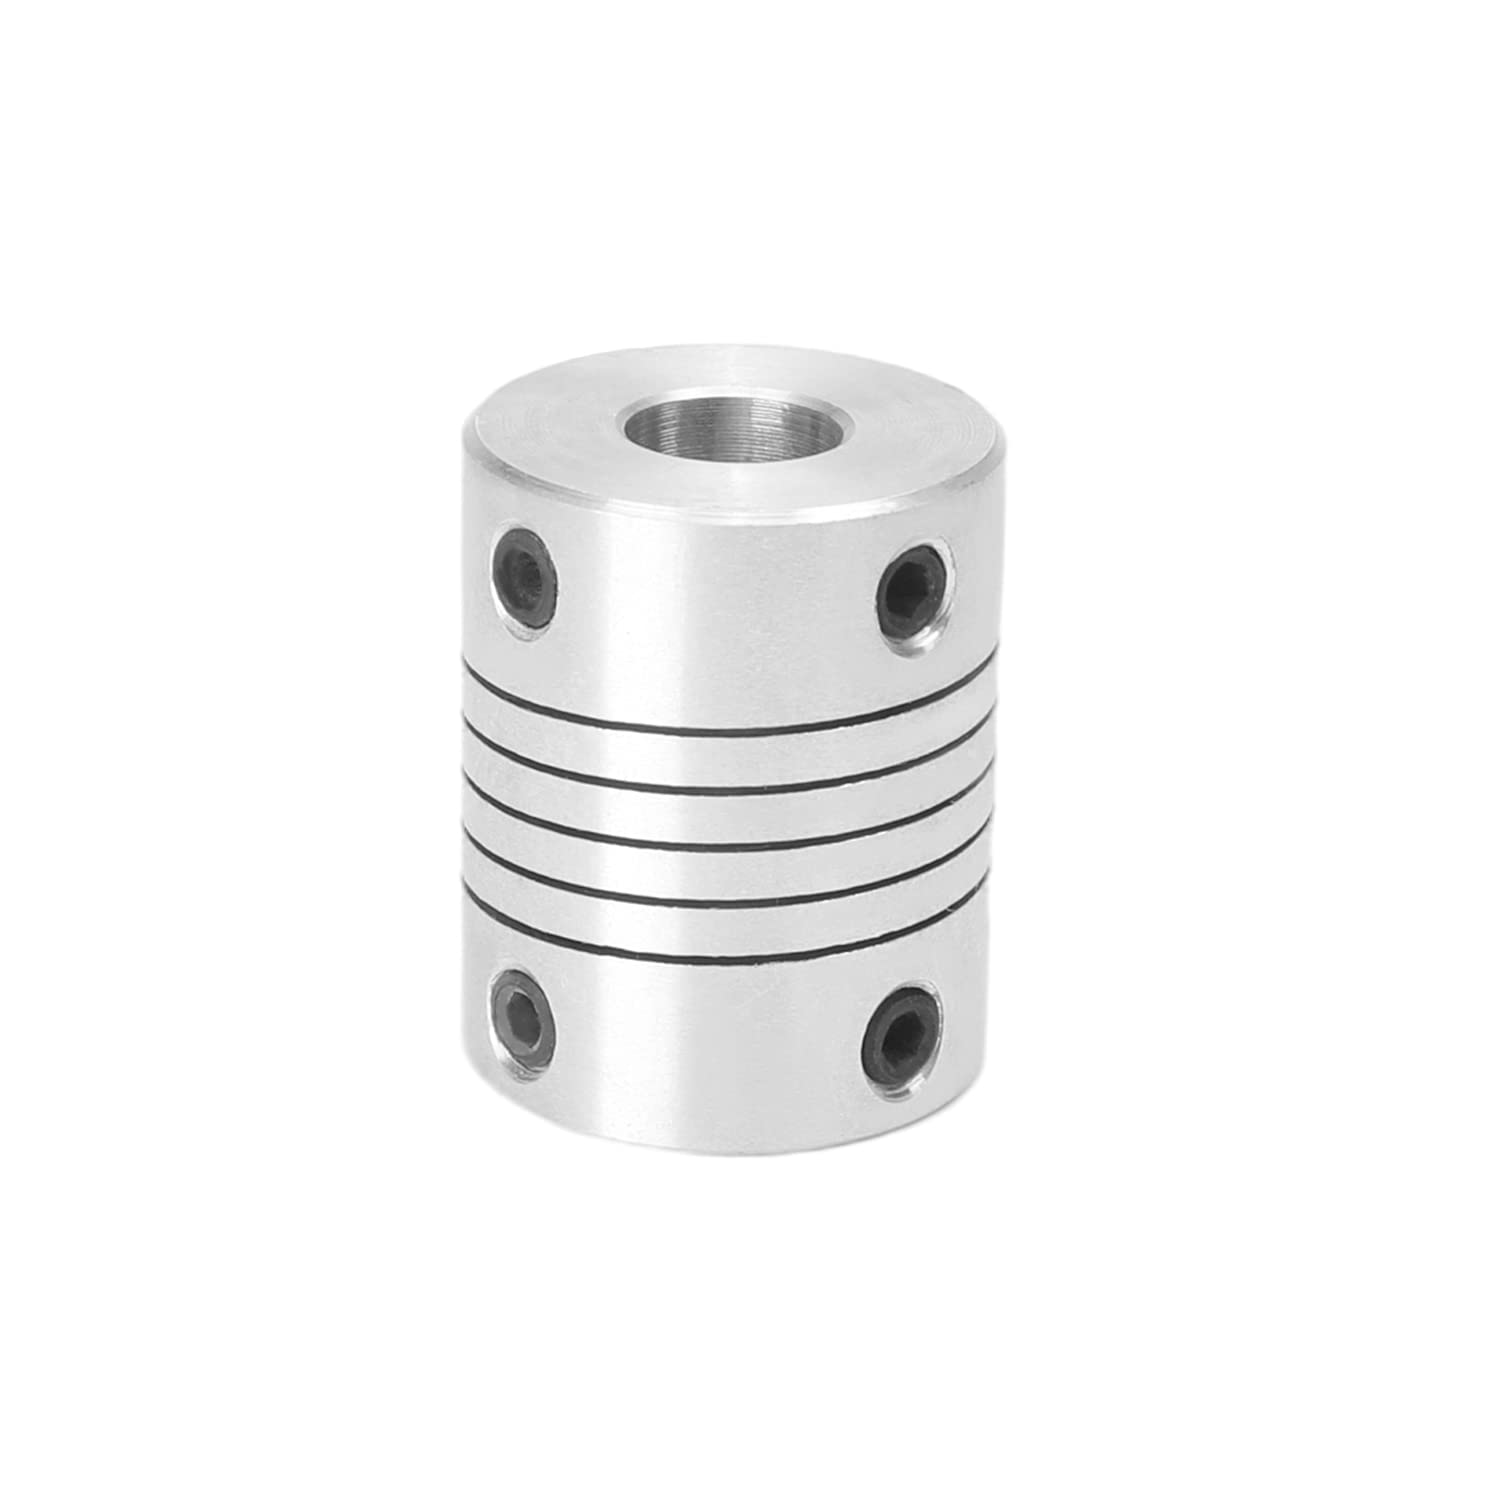 New products, world's highest quality popular! Fielect Shaft Coupling 8mm to Flexible L25xD20 Max 71% OFF Bore Coupler